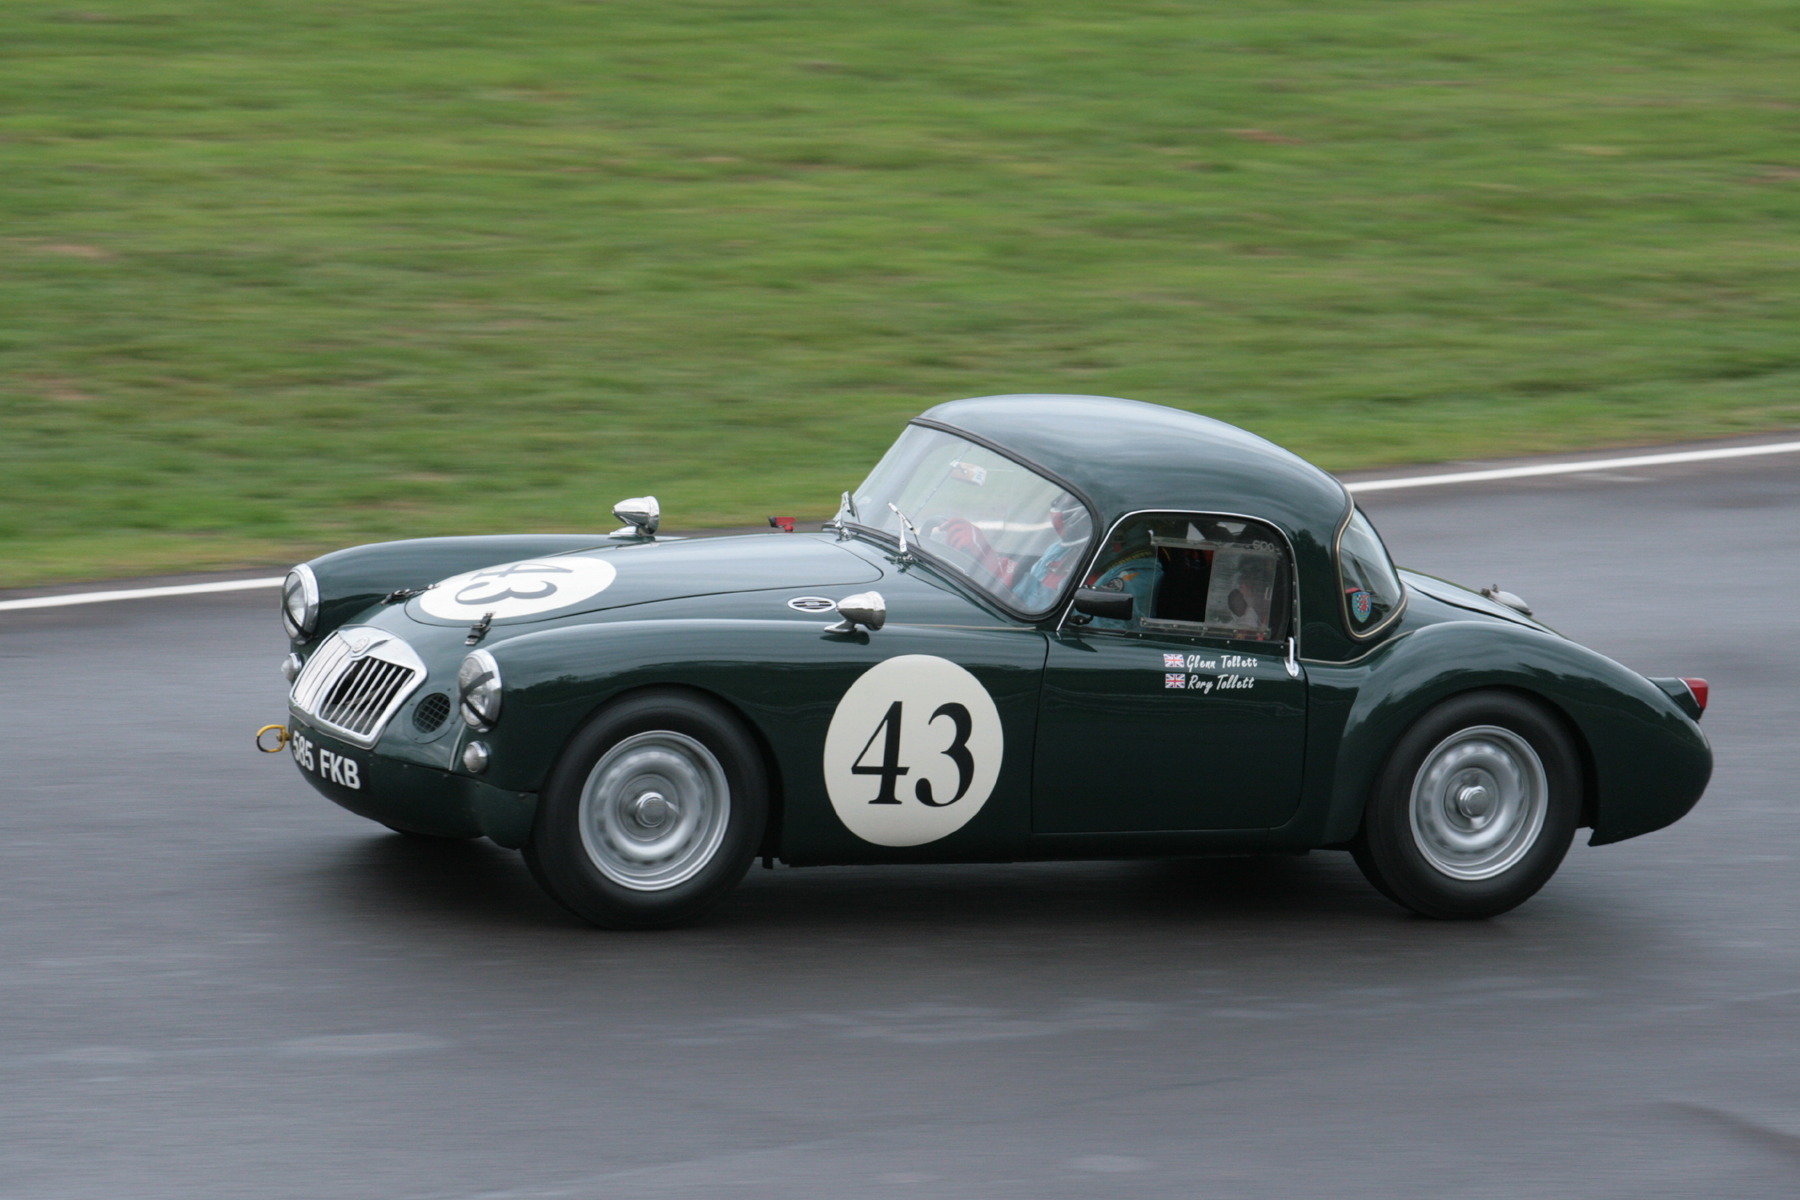 The Tollett MGA Coupe in fine form to finish 9th  Photo - John Turner